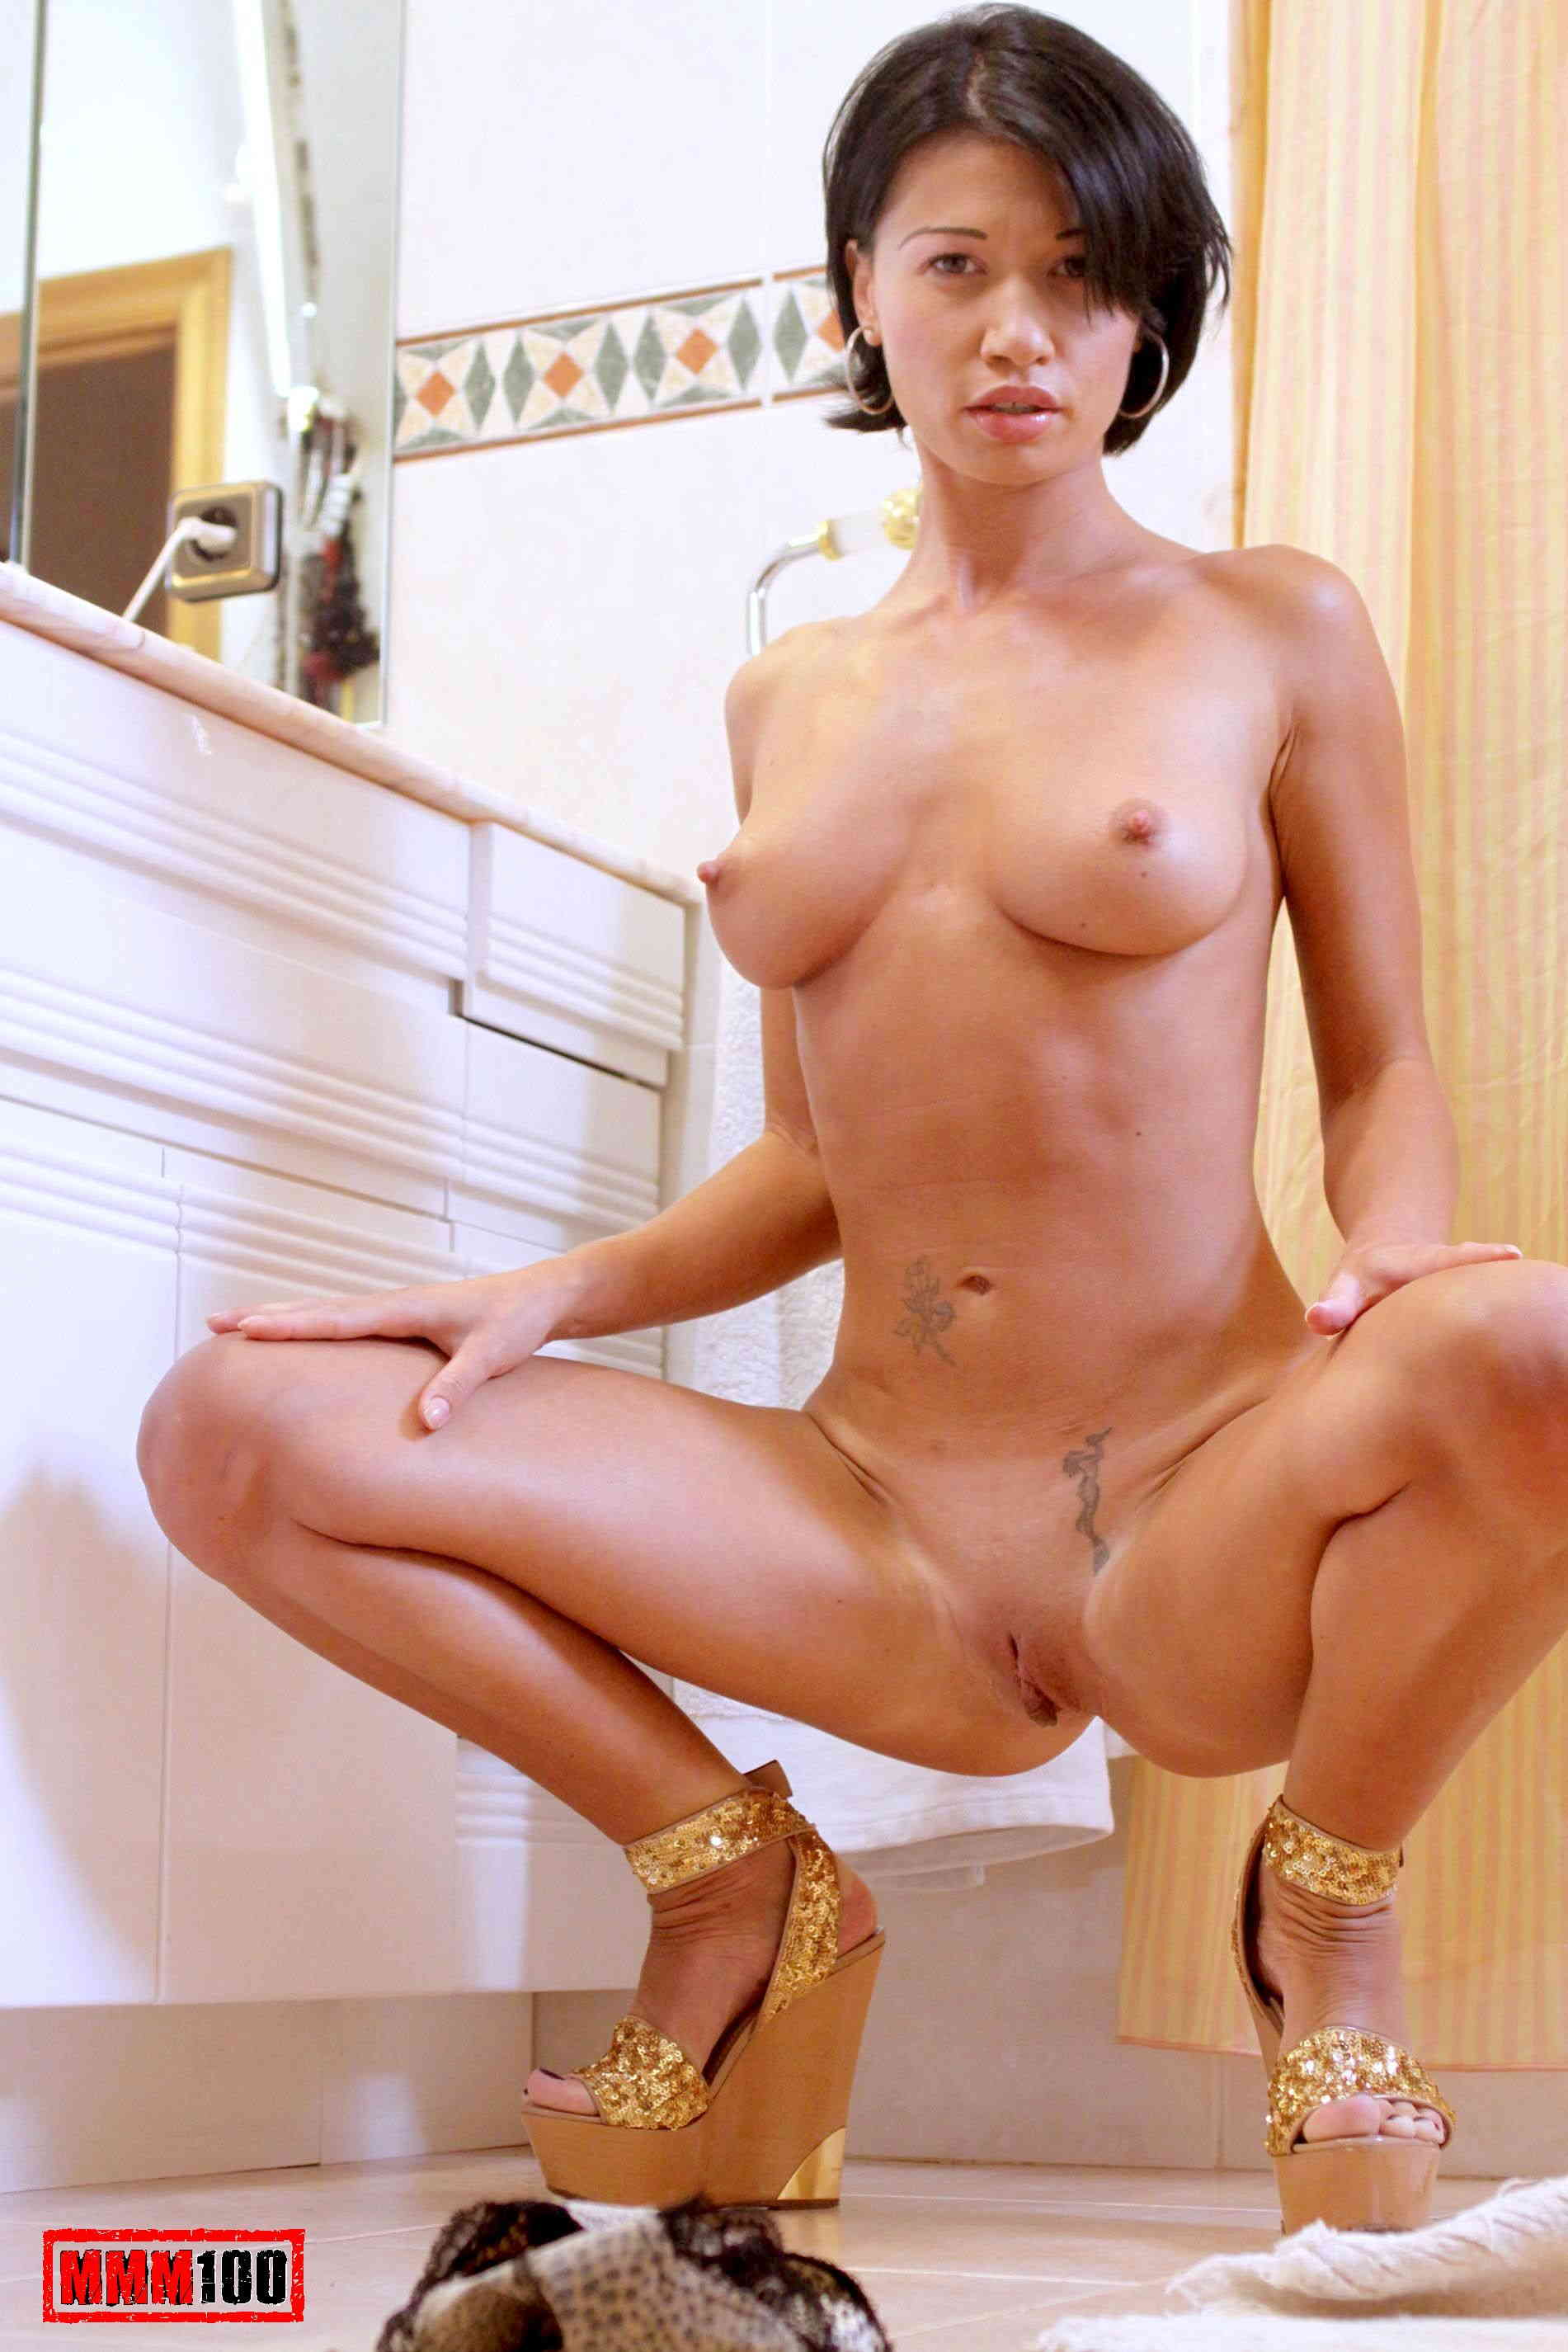 Justine photos nude